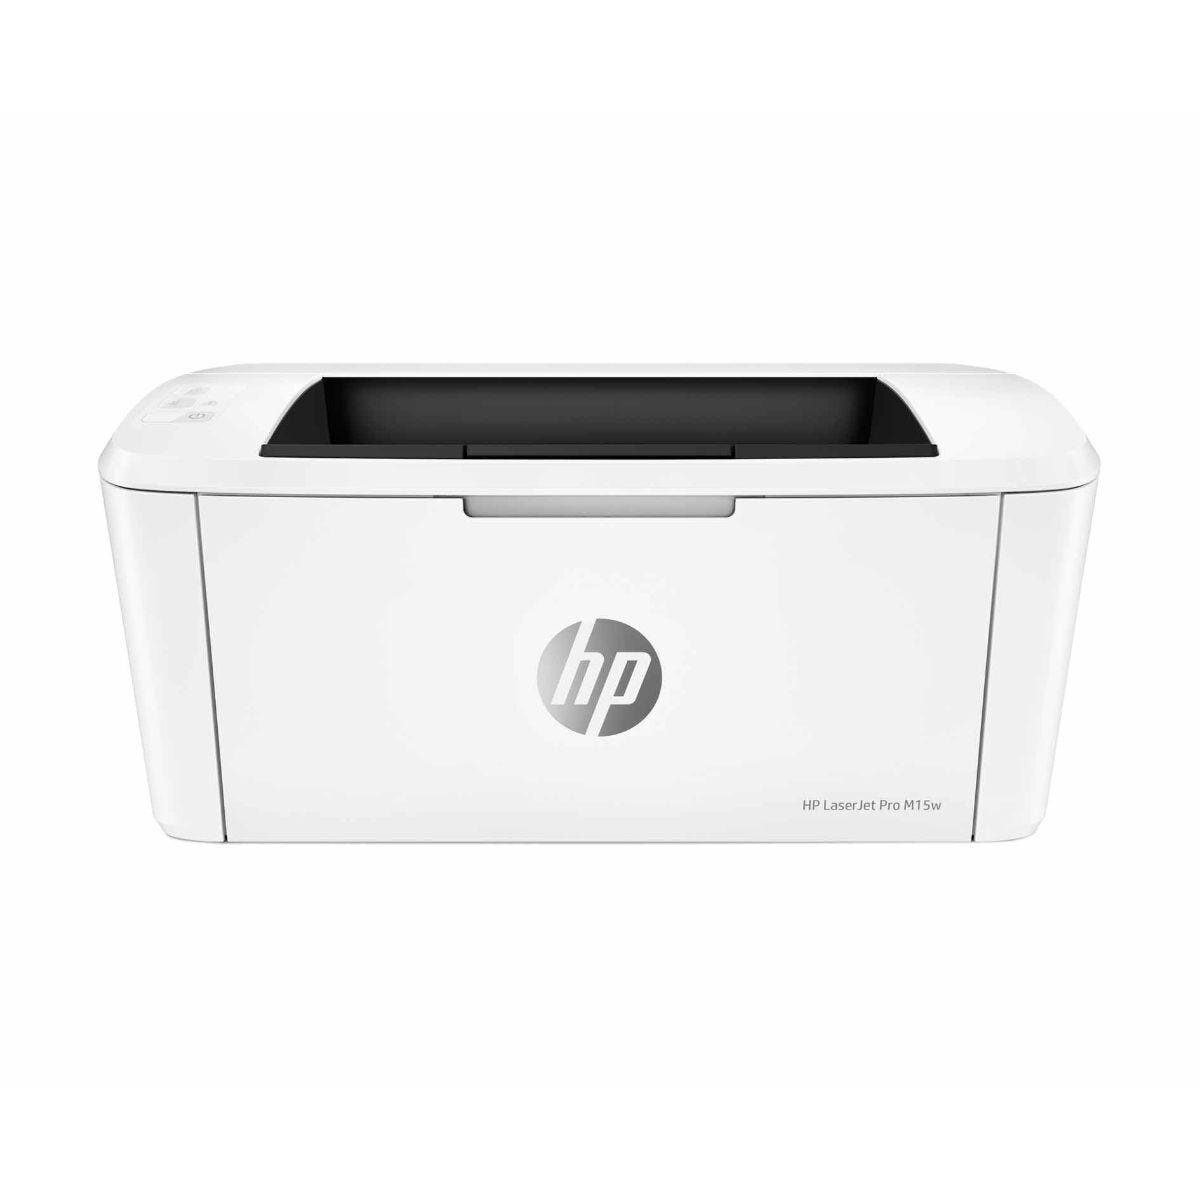 HP LaserJet Pro M15w Mono Laser Printer